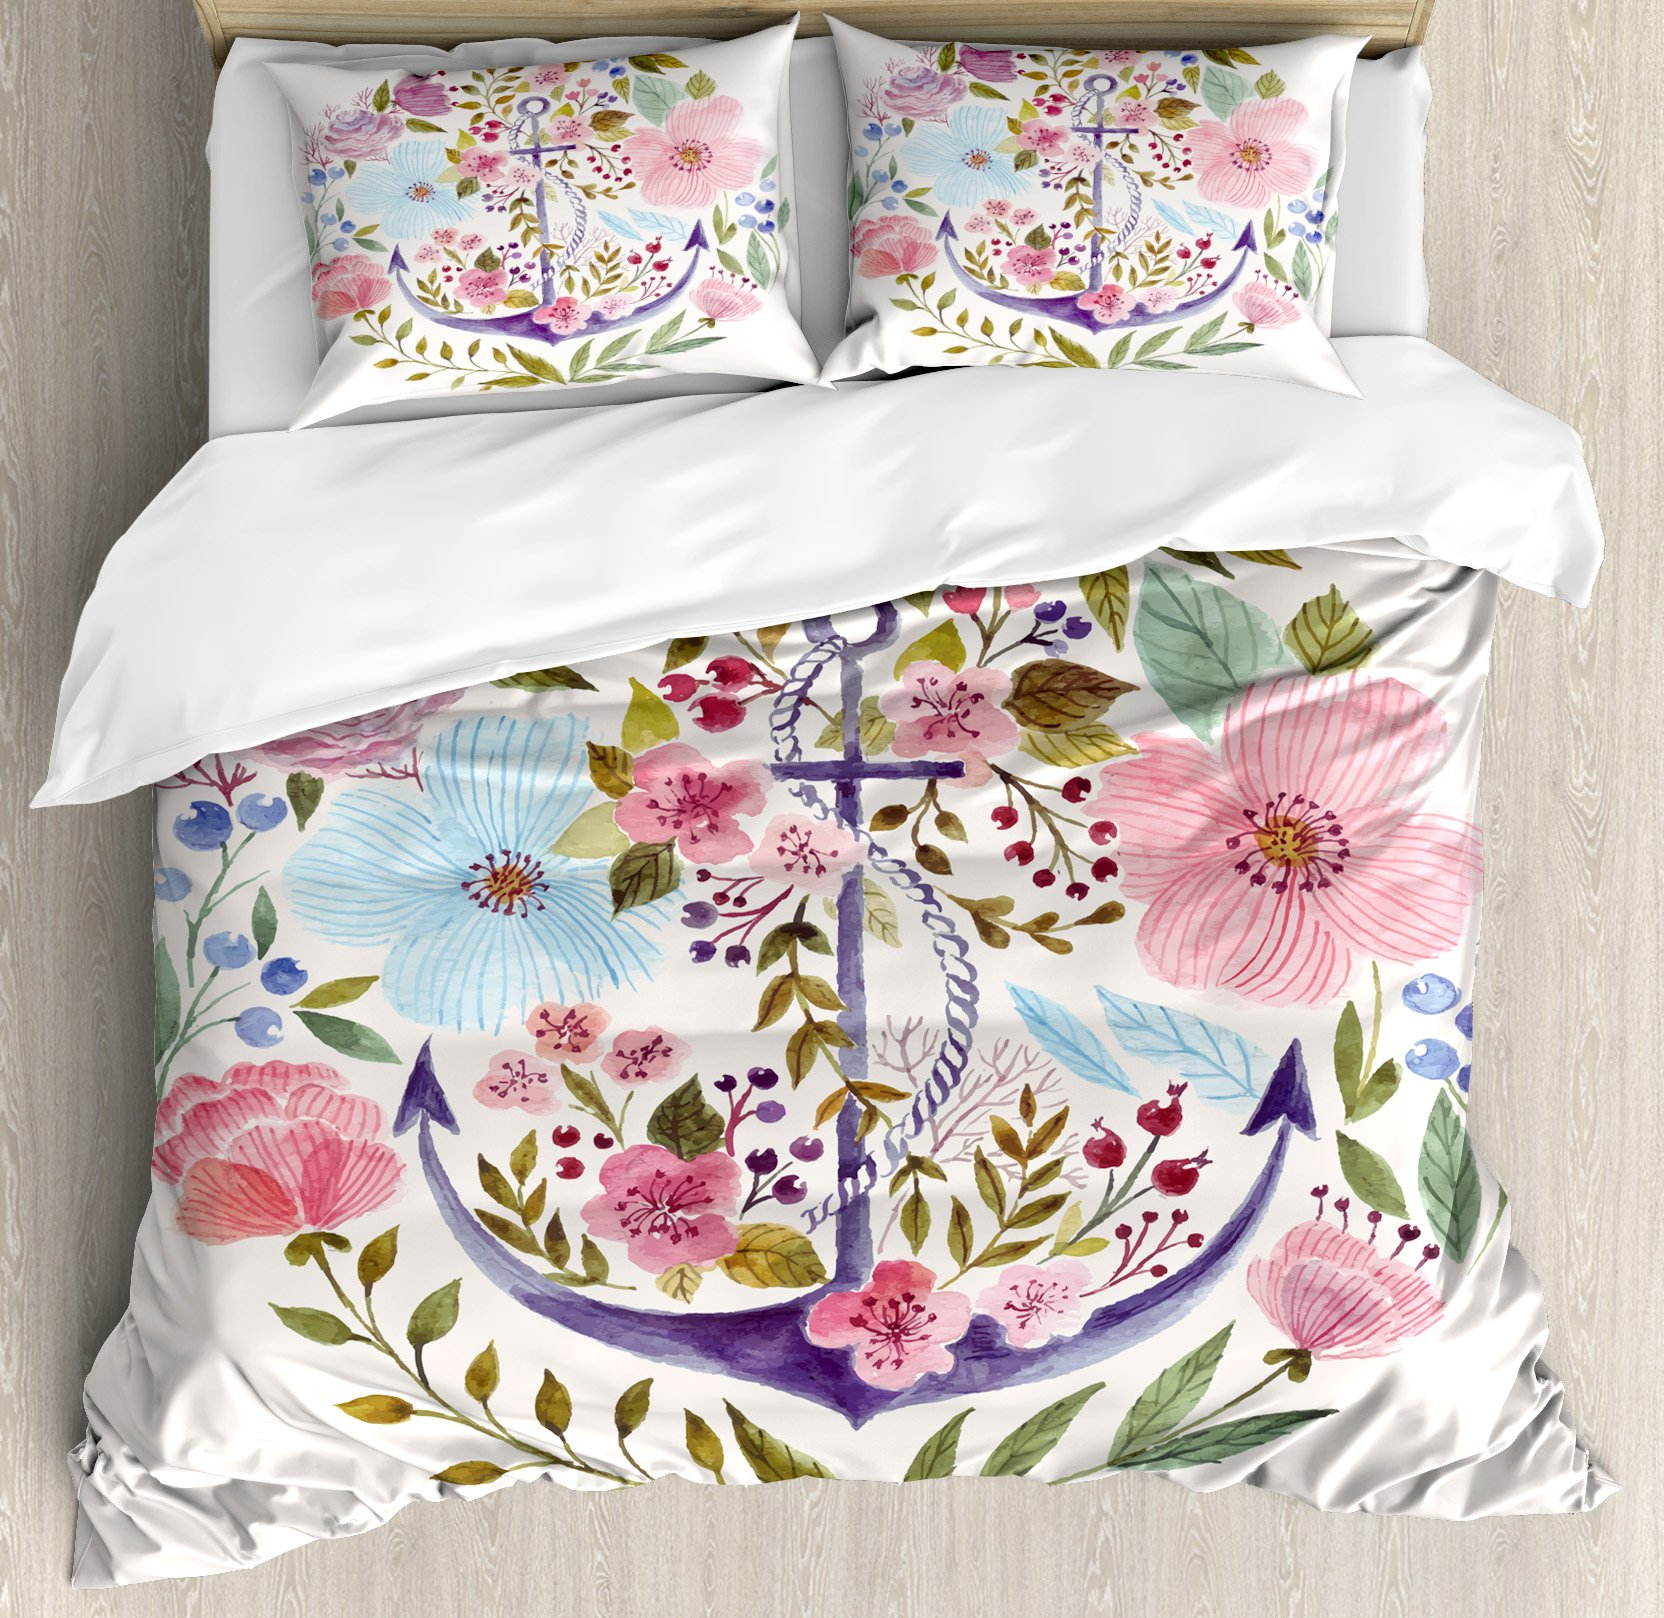 Kitchen Decor Duvet Cover Set by Ambesonne, Nautical and Floral Design Anchor Flowers Watercolor Bouquet Marine Symbol Theme, 3 Piece Bedding Set with Pillow Shams, Queen / Full, White Pink Green